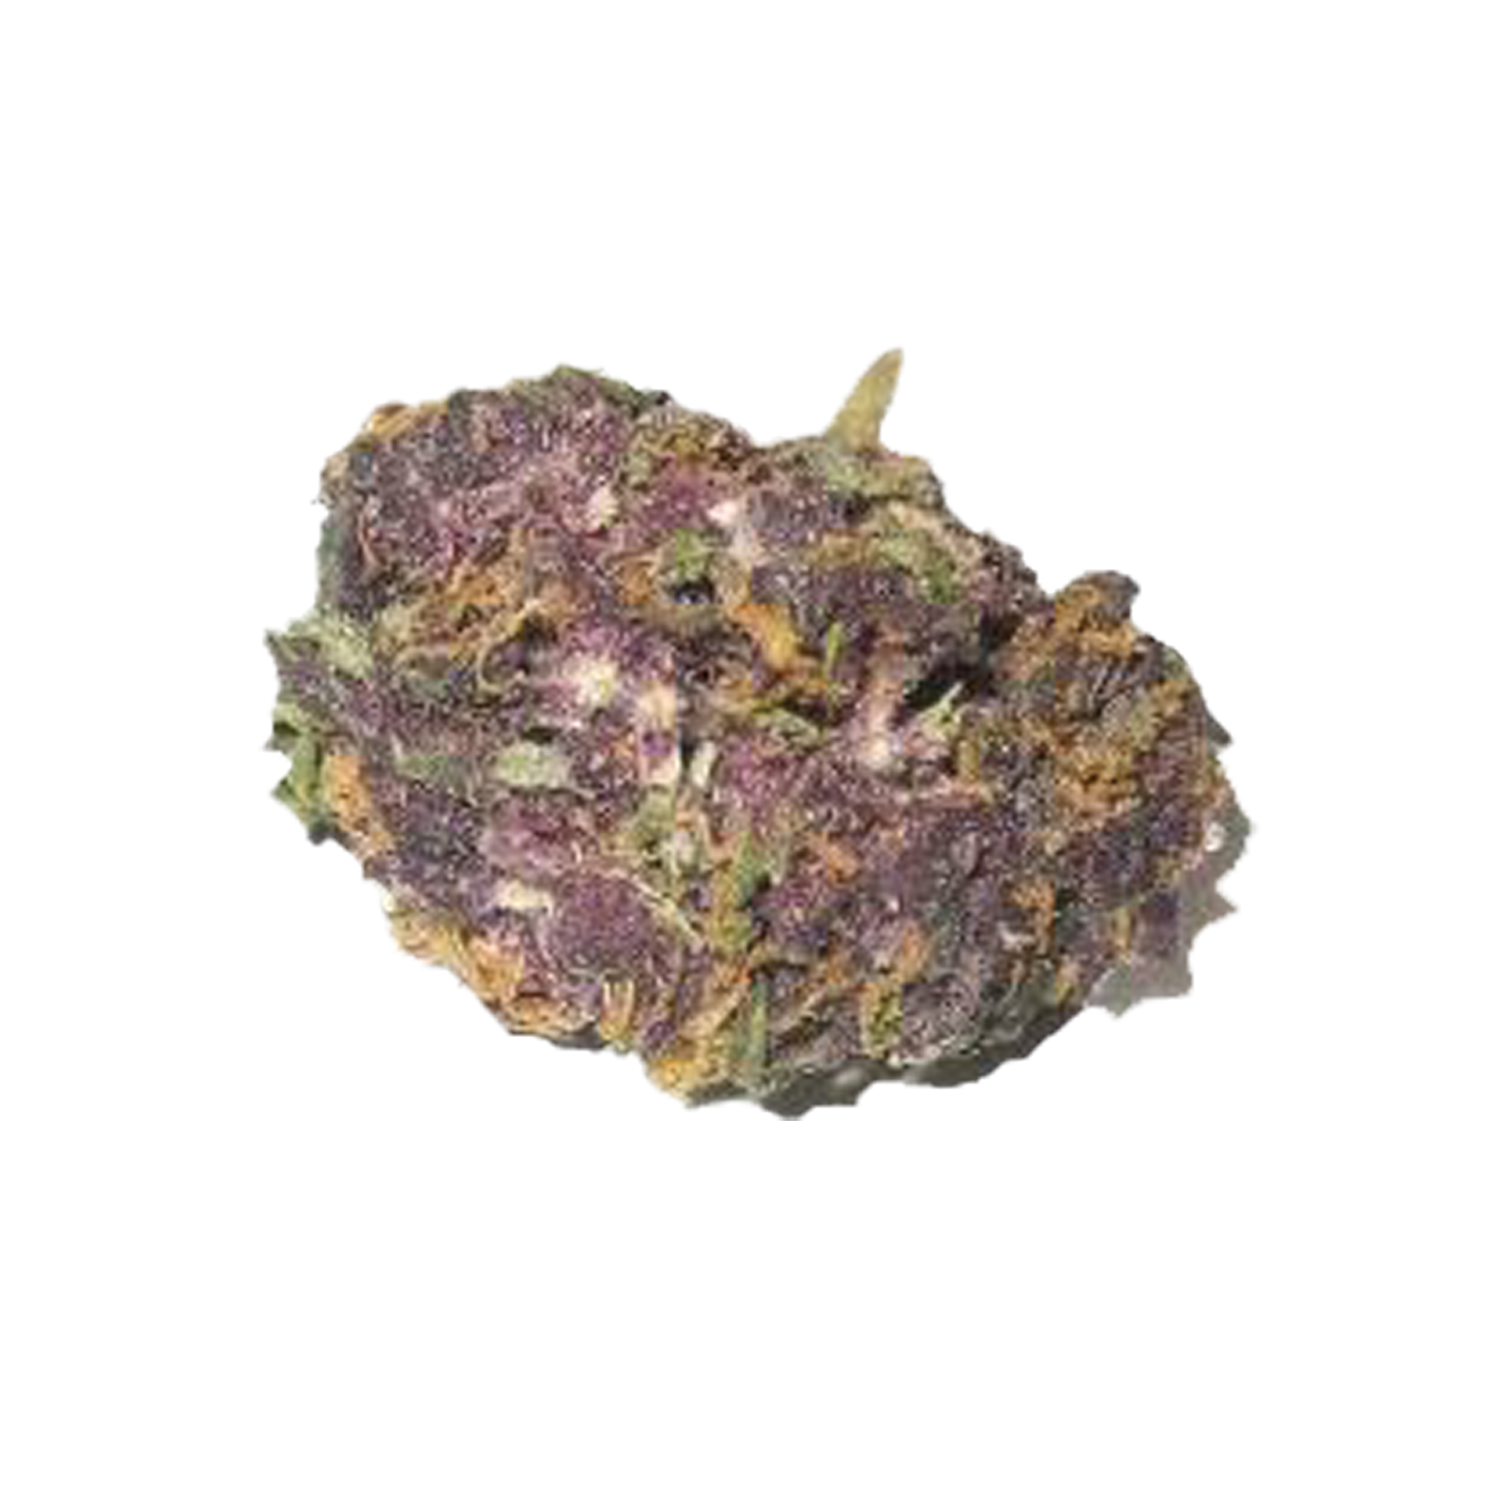 Granddaddy Purps